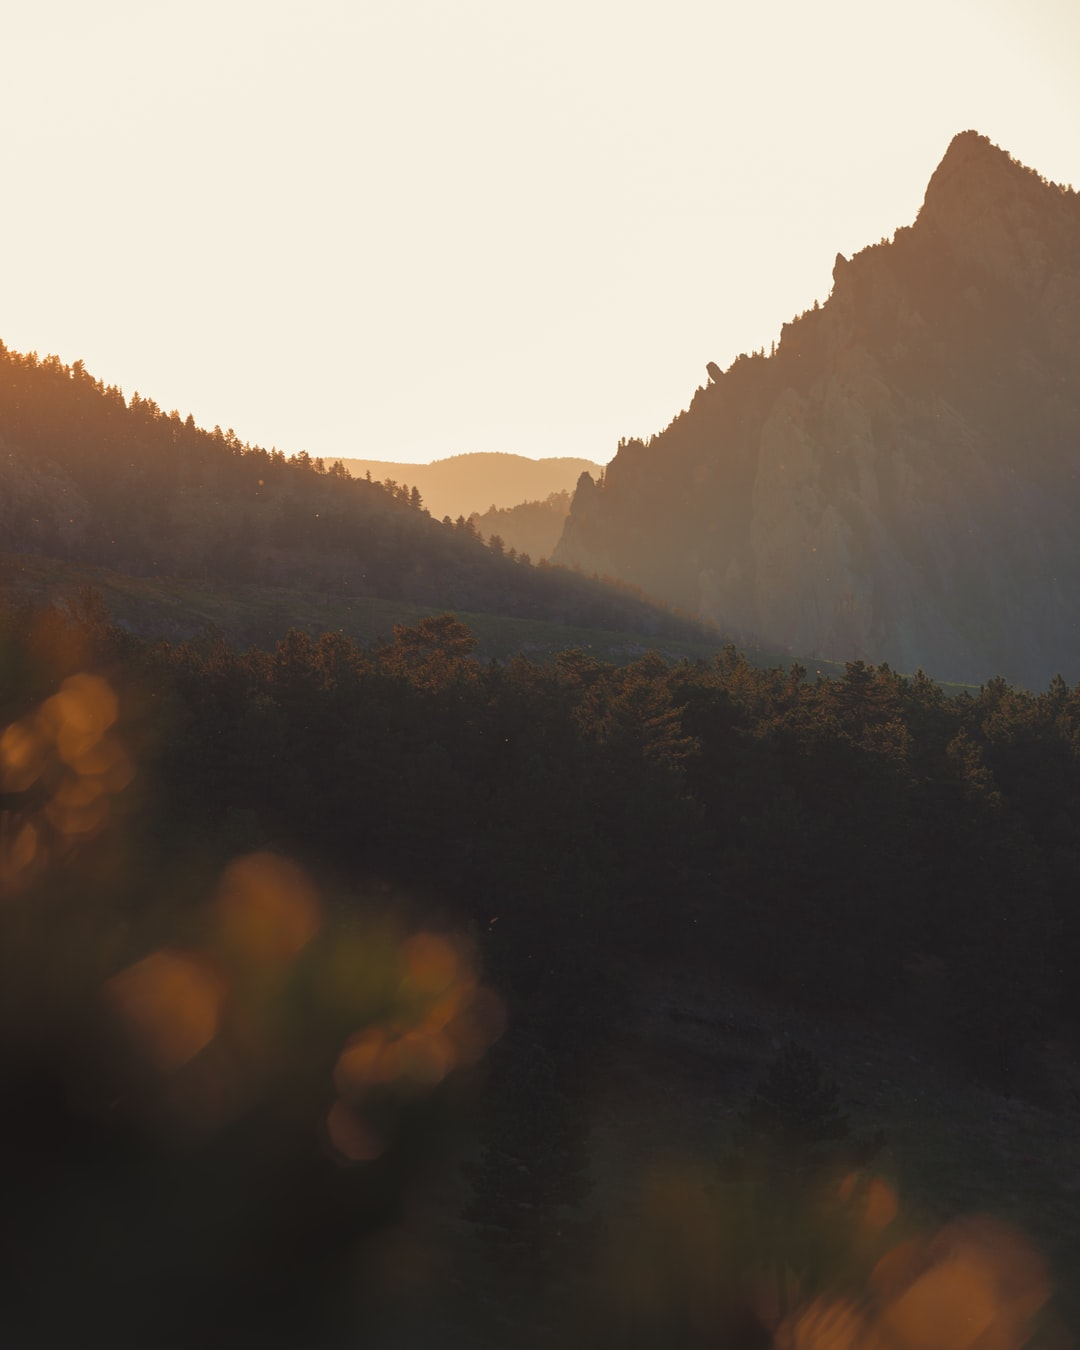 This photo was taken in Boulder, Colorado along the Flat Iron Vista Trail.